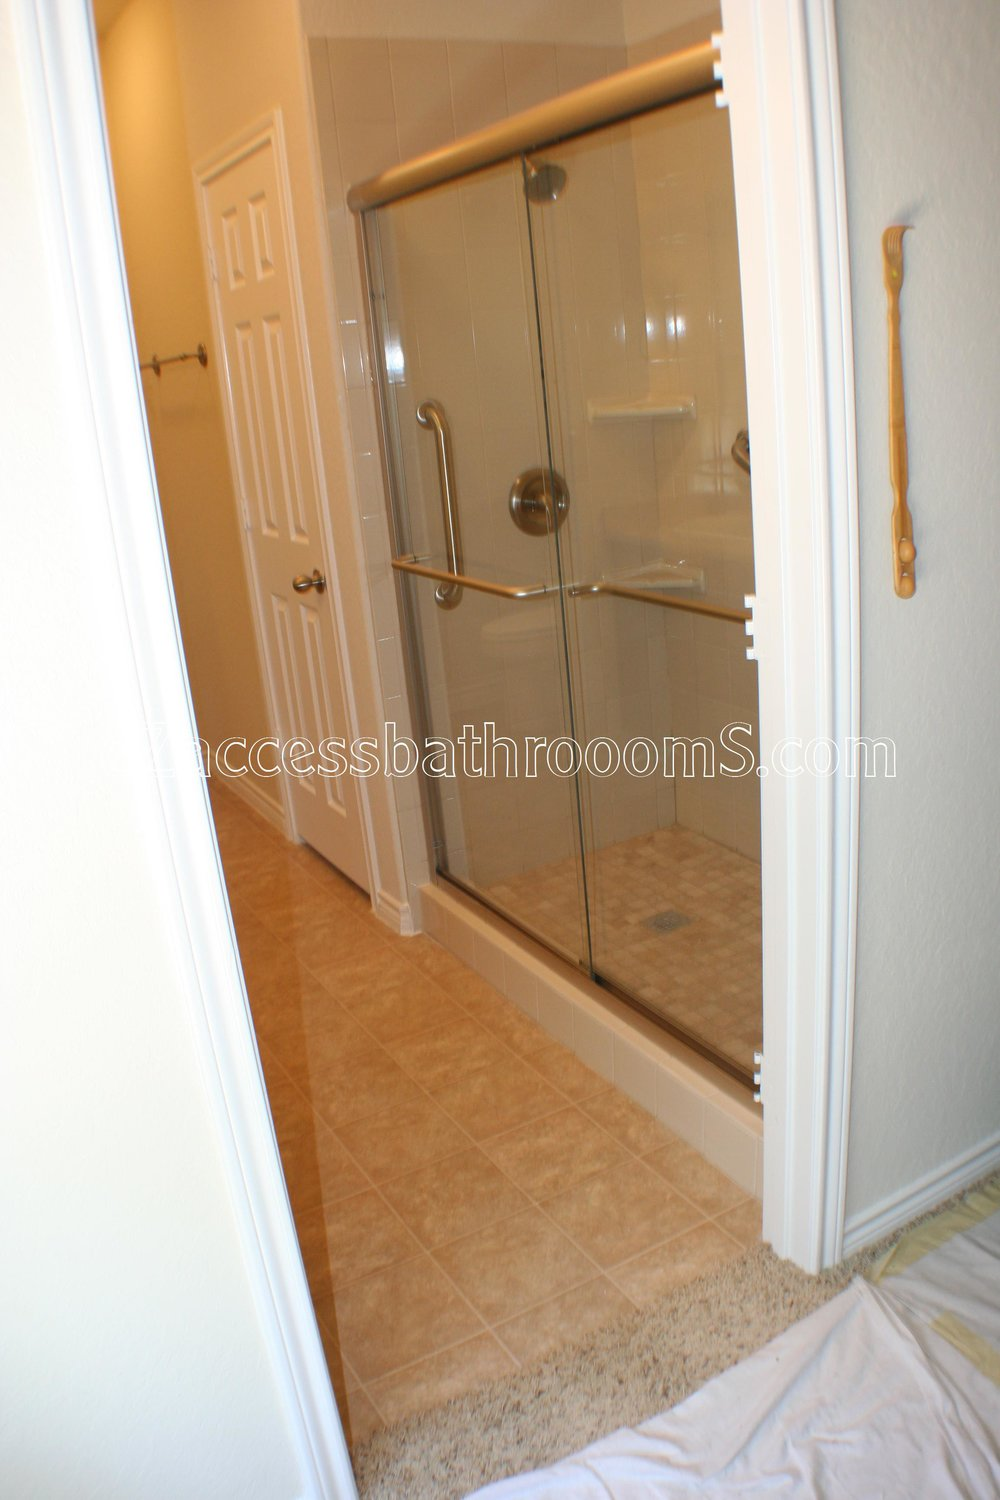 TUBTOSHOWERS CONVERSIONS EZACCESSBATHROOMS.COM 832202843 BRYANT 111.JPG